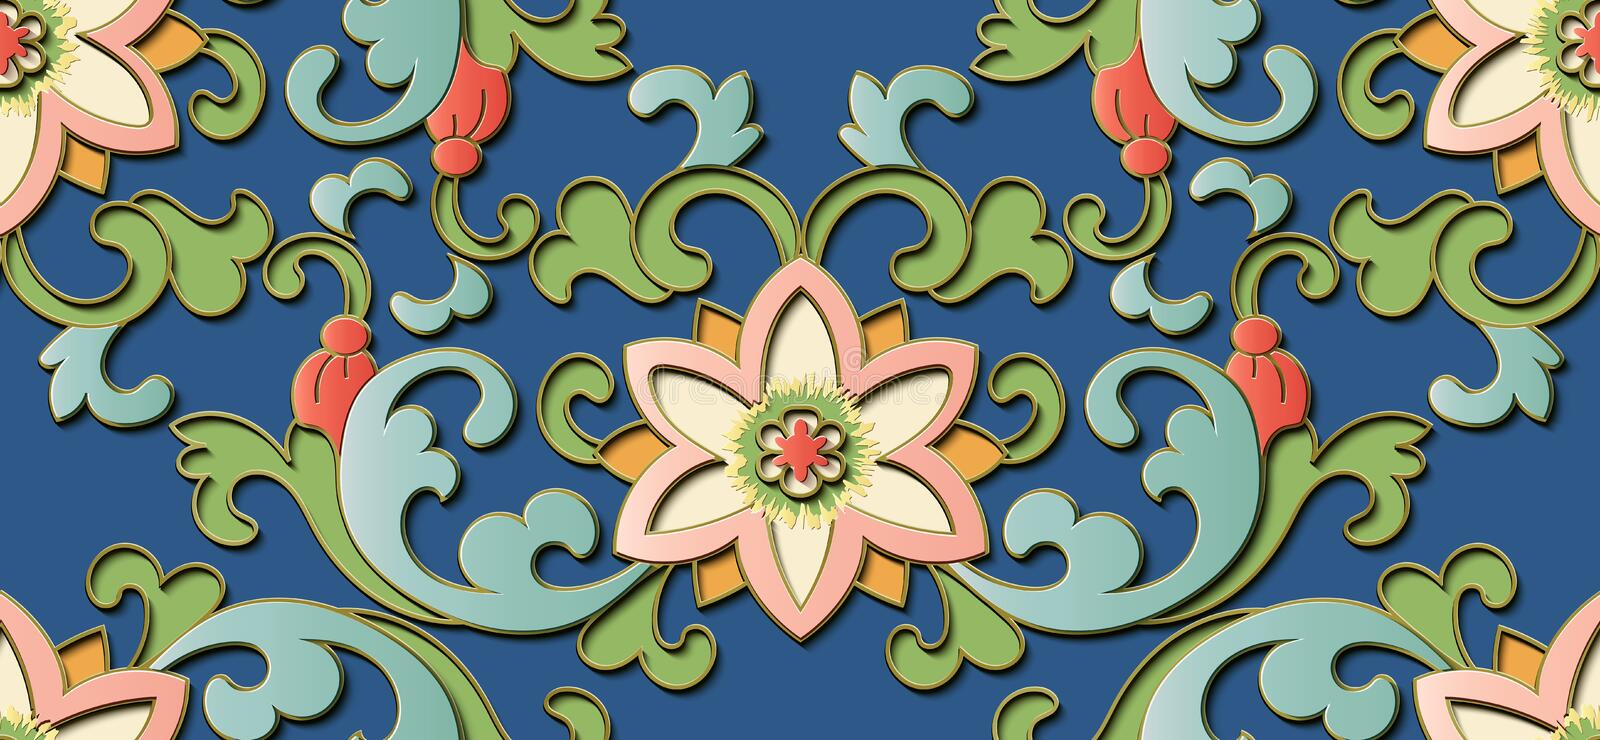 Seamless relief sculpture decoration retro pattern Chinese botanic garden flower leaf spiral cross vine. Ideal for greeting card or backdrop template design stock illustration